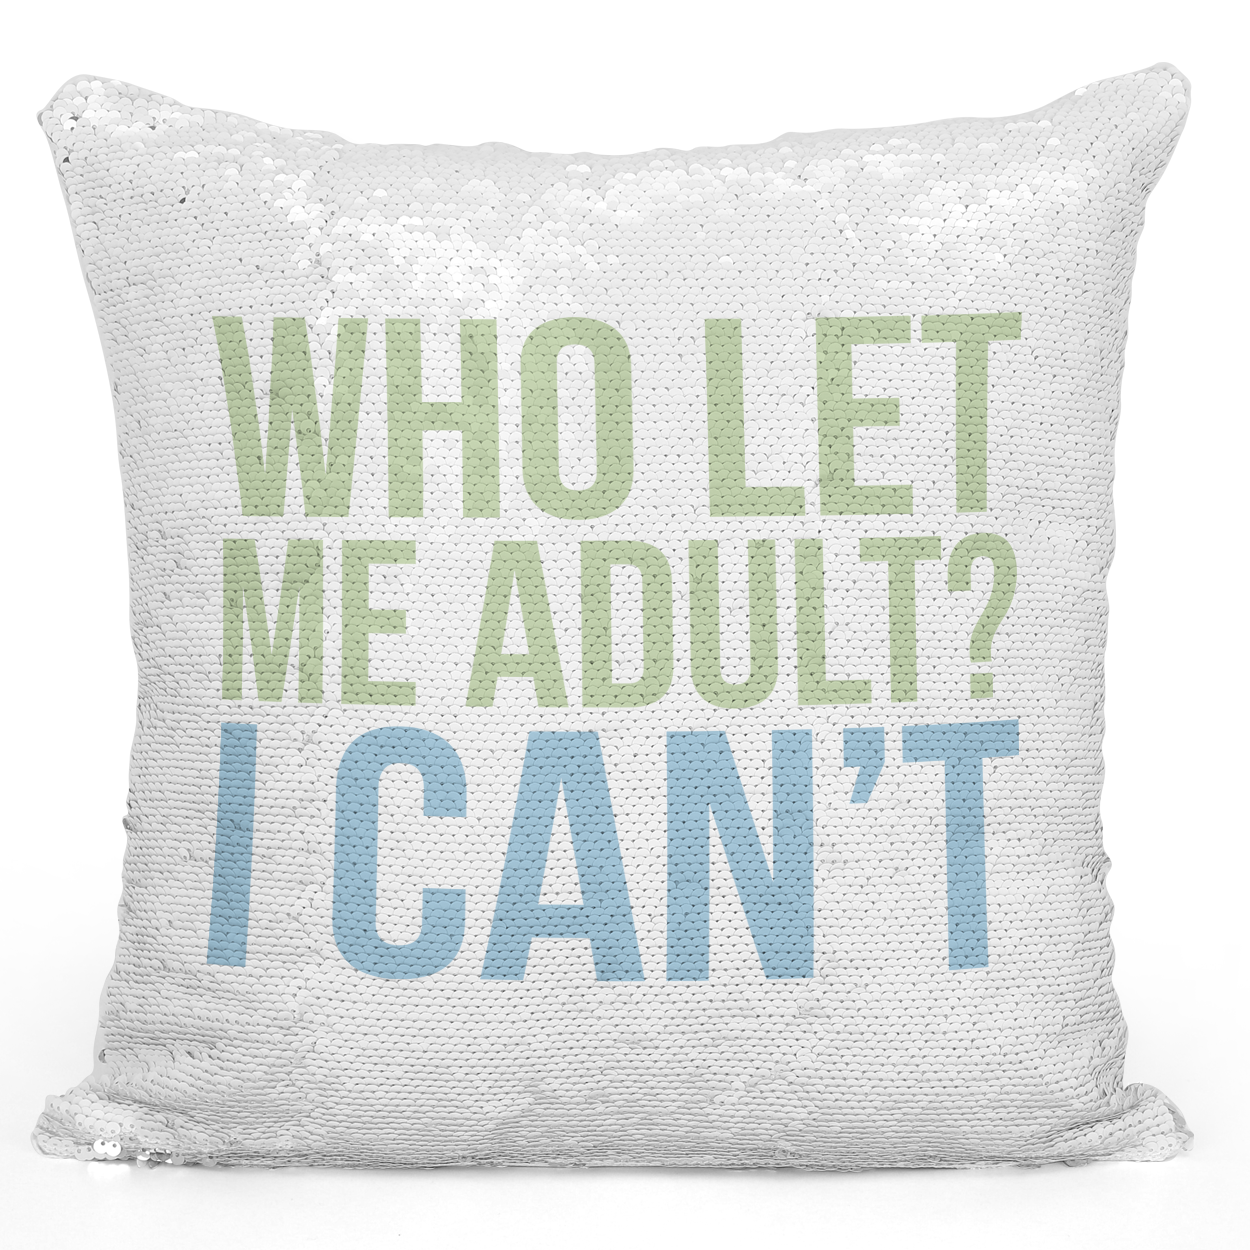 16x16 inch Sequin Throw Pillow Magic Flip Pillow Who Let Me Adult i Cant Youth Friends Family Pillows Loud Universe